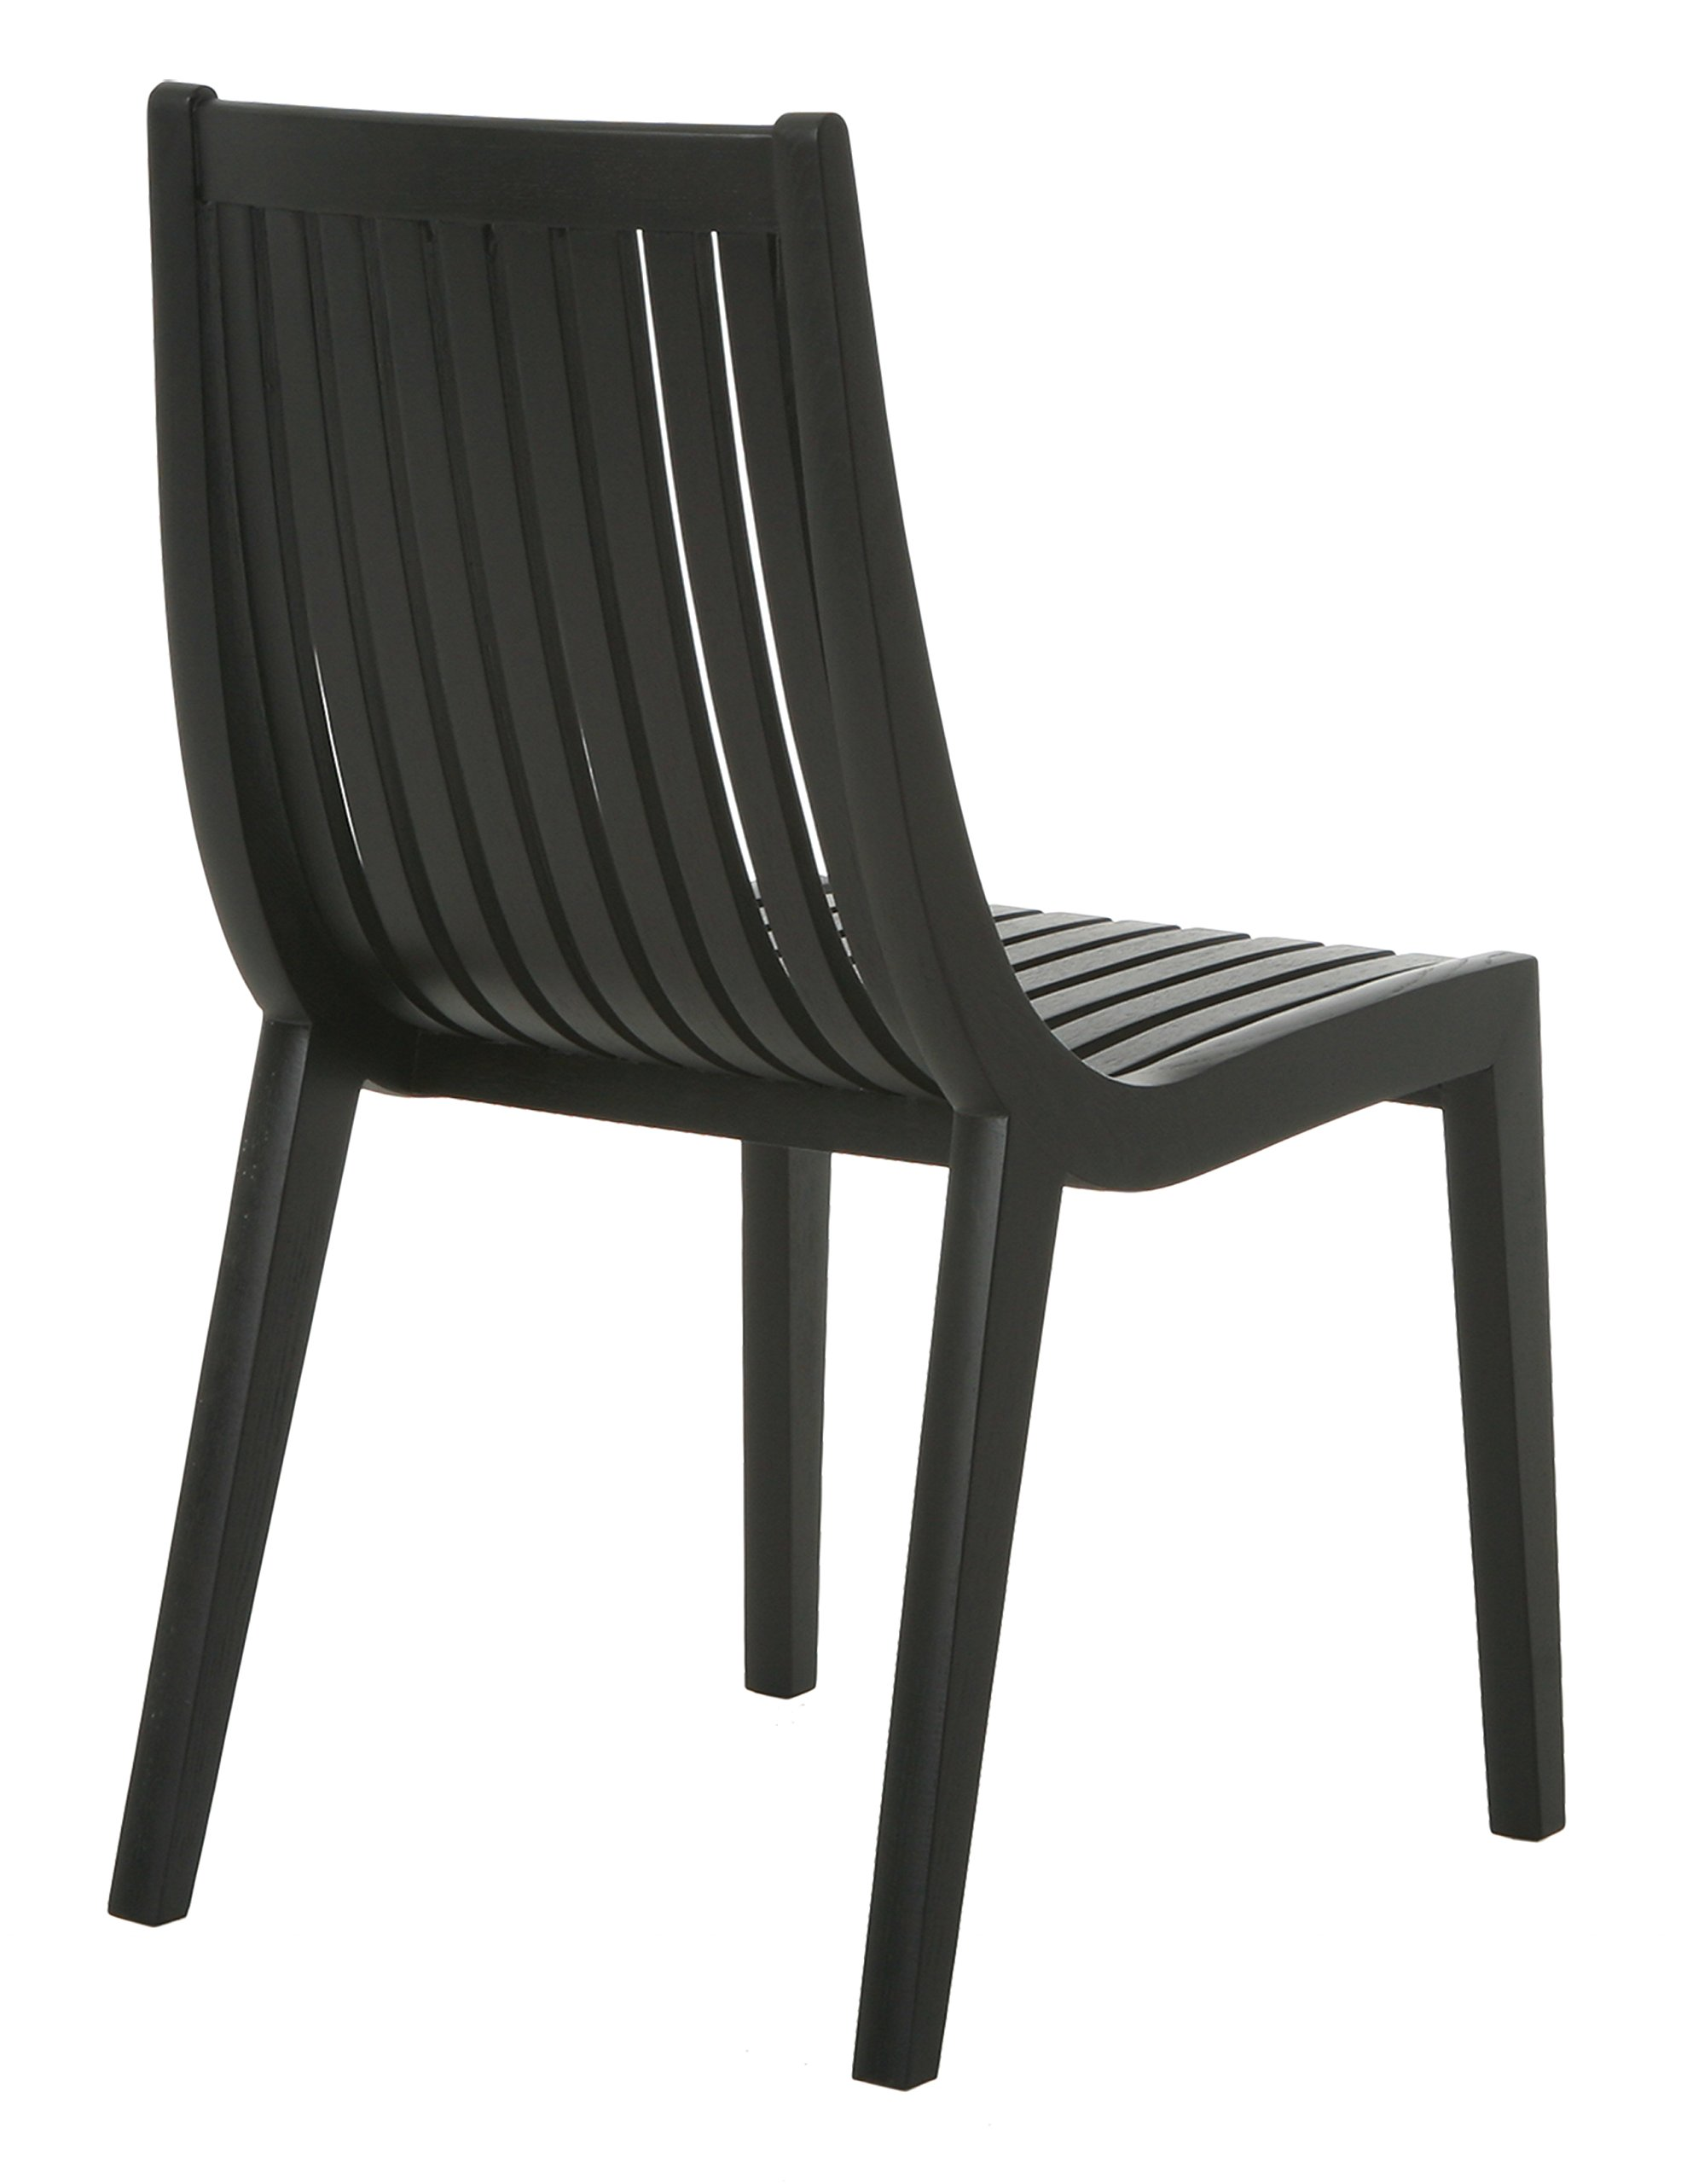 Impacterra Oslo Side Chair, Wenge Veneer/ Veneer - Dining side chair All-MDF frame Suitable for indoor dining, non-commercial use - kitchen-dining-room-furniture, kitchen-dining-room, kitchen-dining-room-chairs - 71YngzcLMZL -